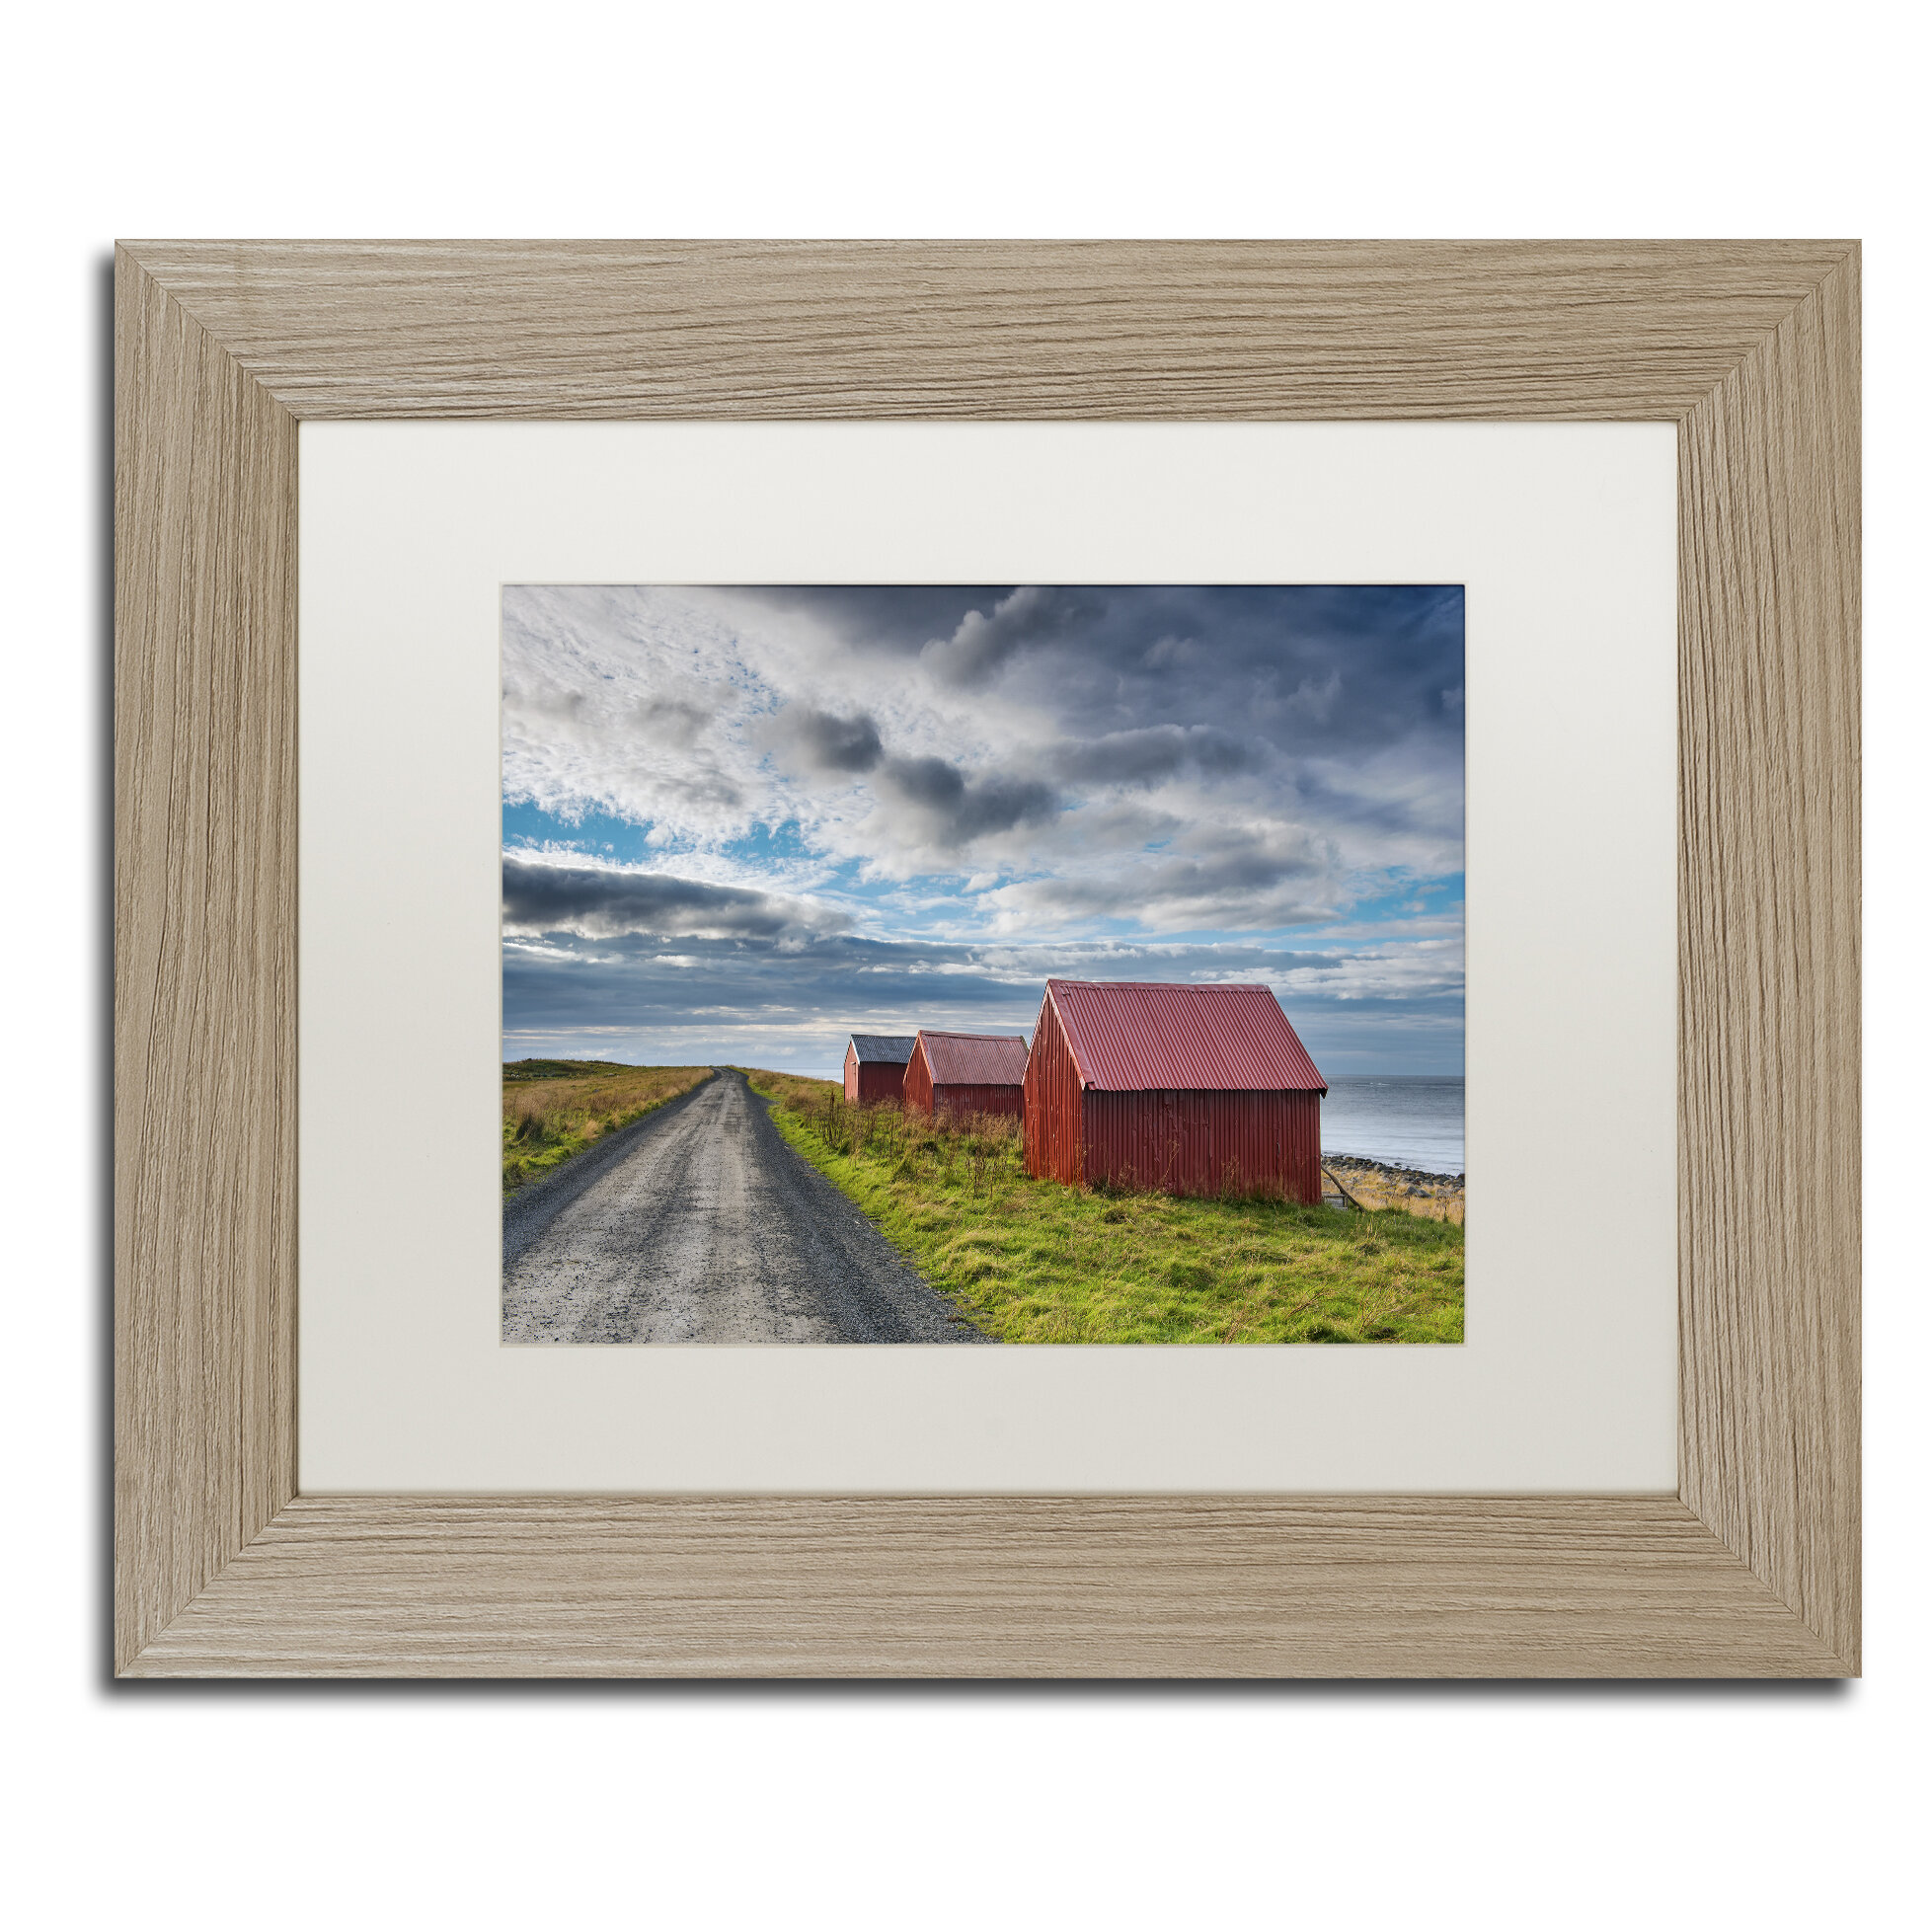 Trademark Art Three In A Row By Michael Blanchette Framed Photographic Print Wayfair